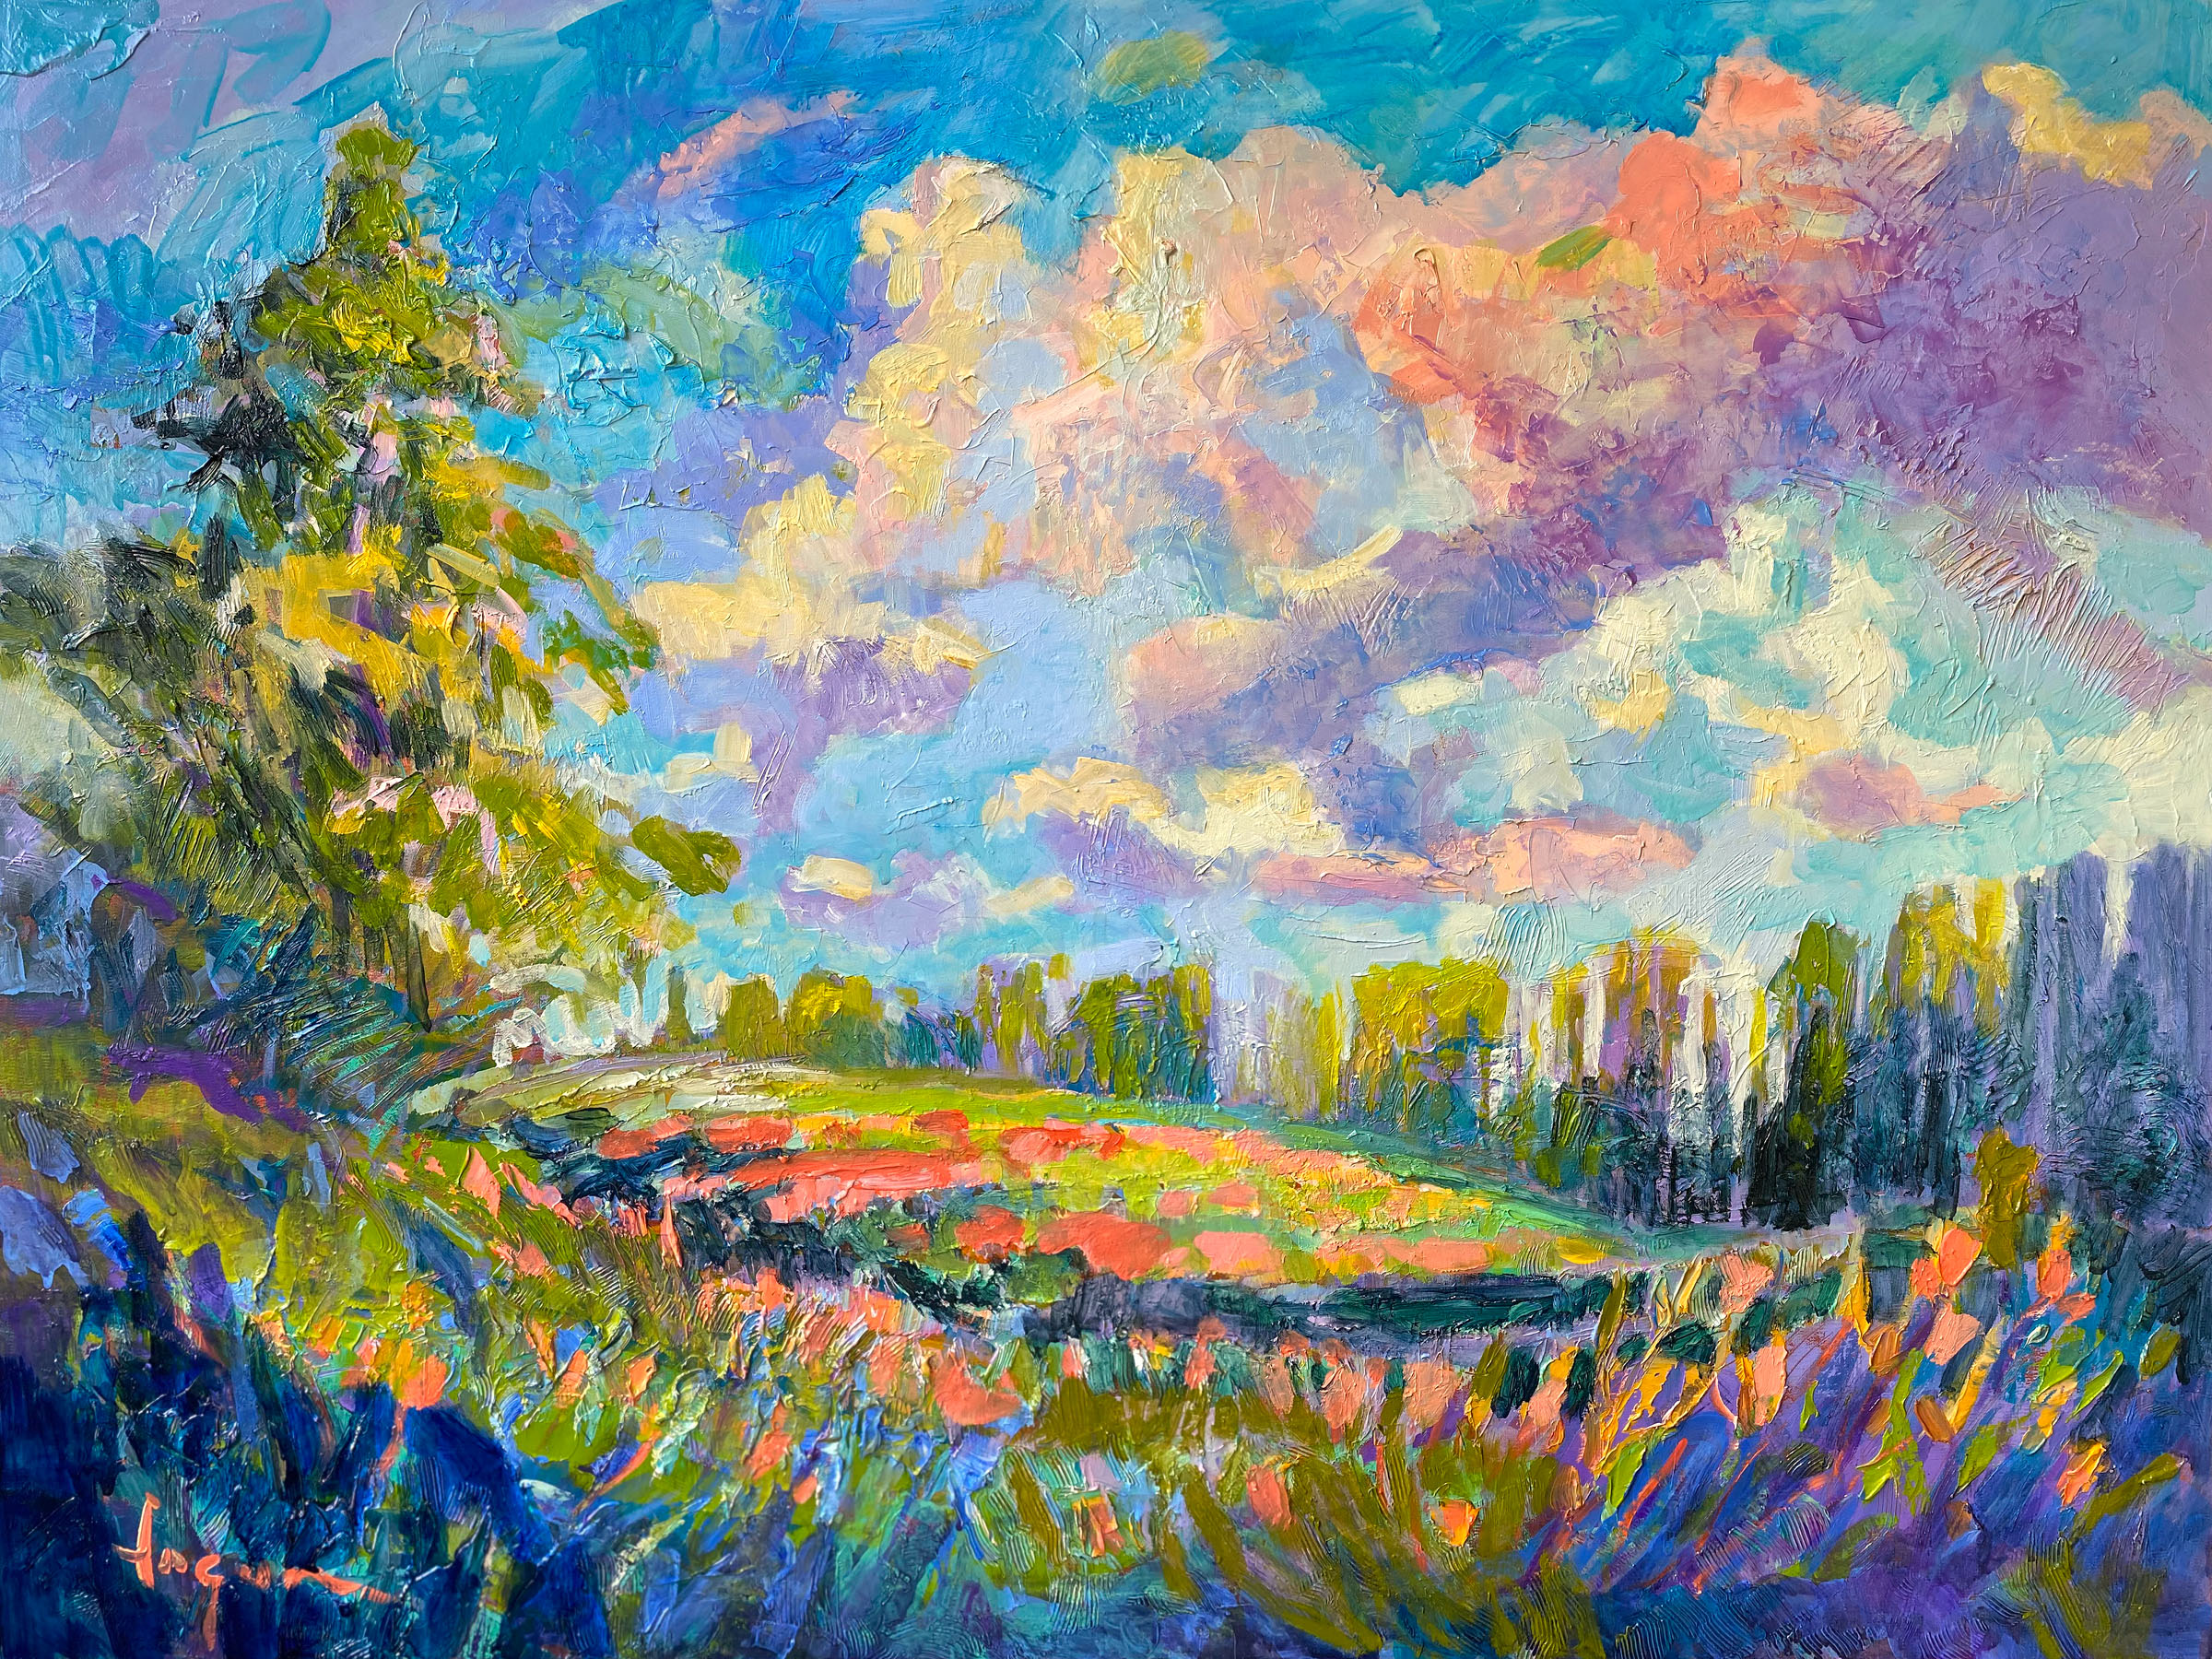 Inspirational Landscape Murals Uplift & Soothe. Diptychs, Triptych Oil Paintings & Canvas Giclees